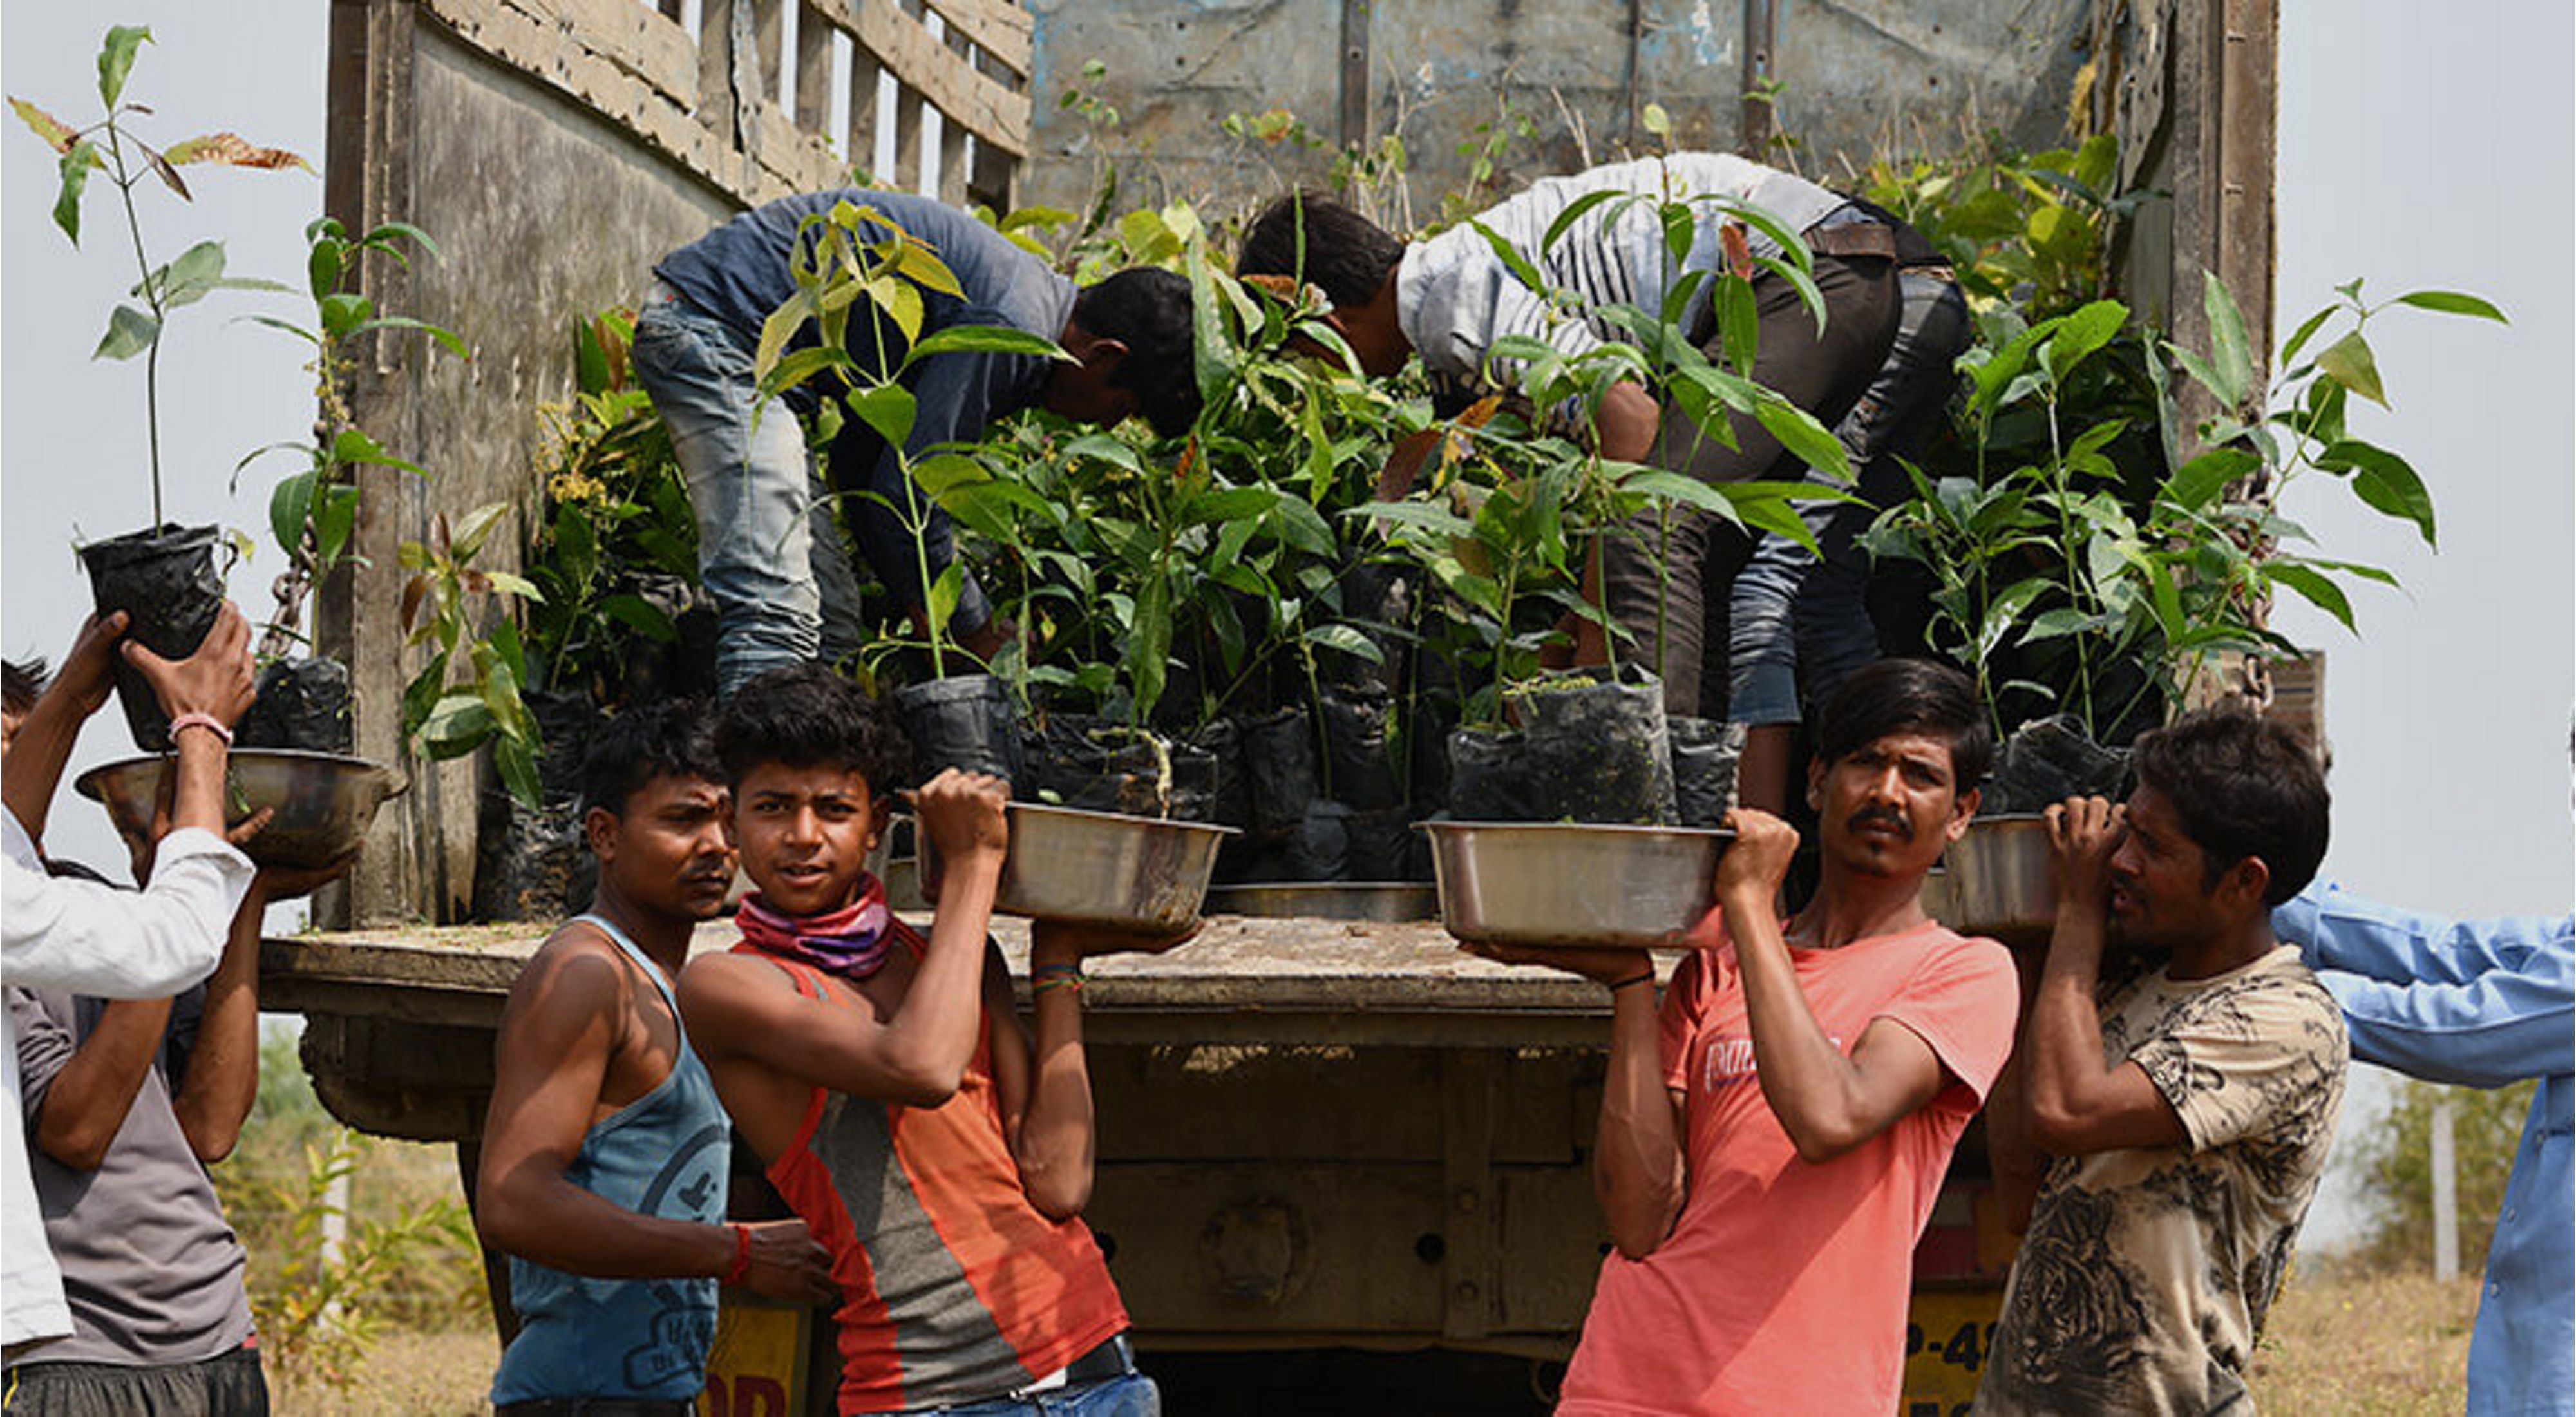 The Nature Conservancy is working with communities to improve 3 km of Narmada's riverbanks by planting and nurturing native plants.